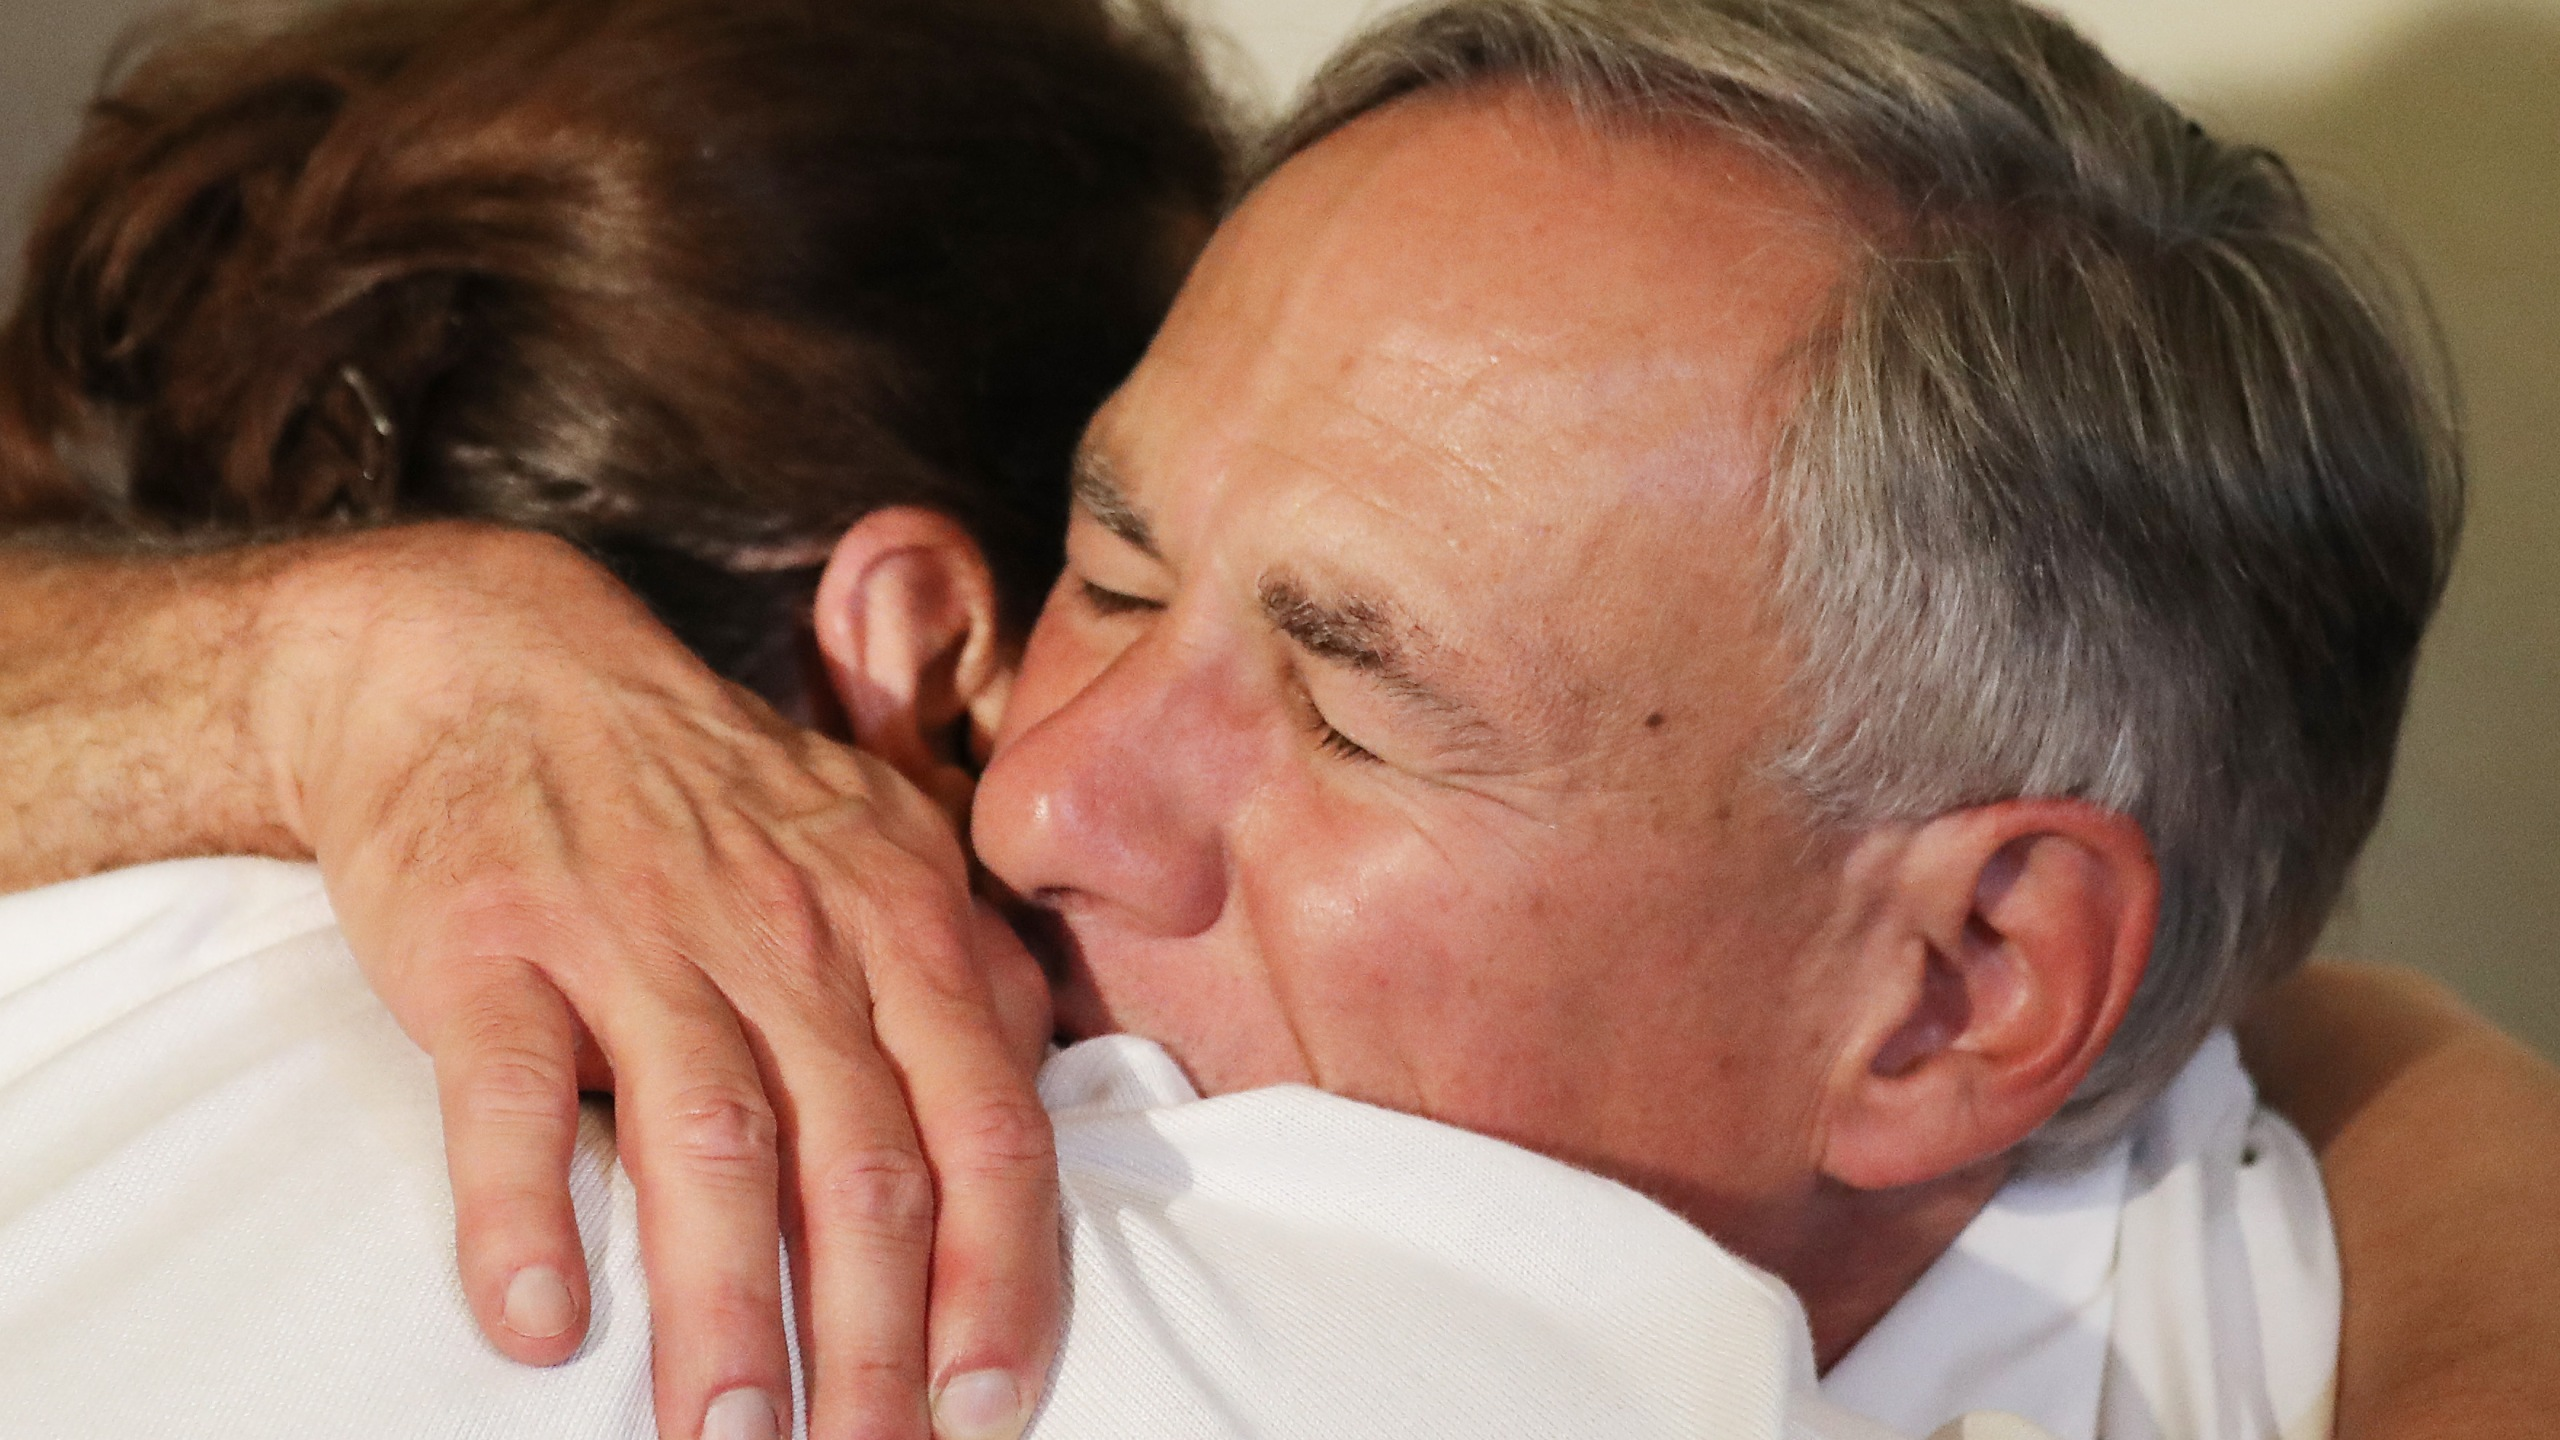 Texas Governor Greg Abbott (right) hugs a woman following a vigil for victims at St. Pius X Church after a mass shooting which left at least 20 people dead on August 3, 2019, in El Paso, Texas. (Credit: Mario Tama/Getty Images)